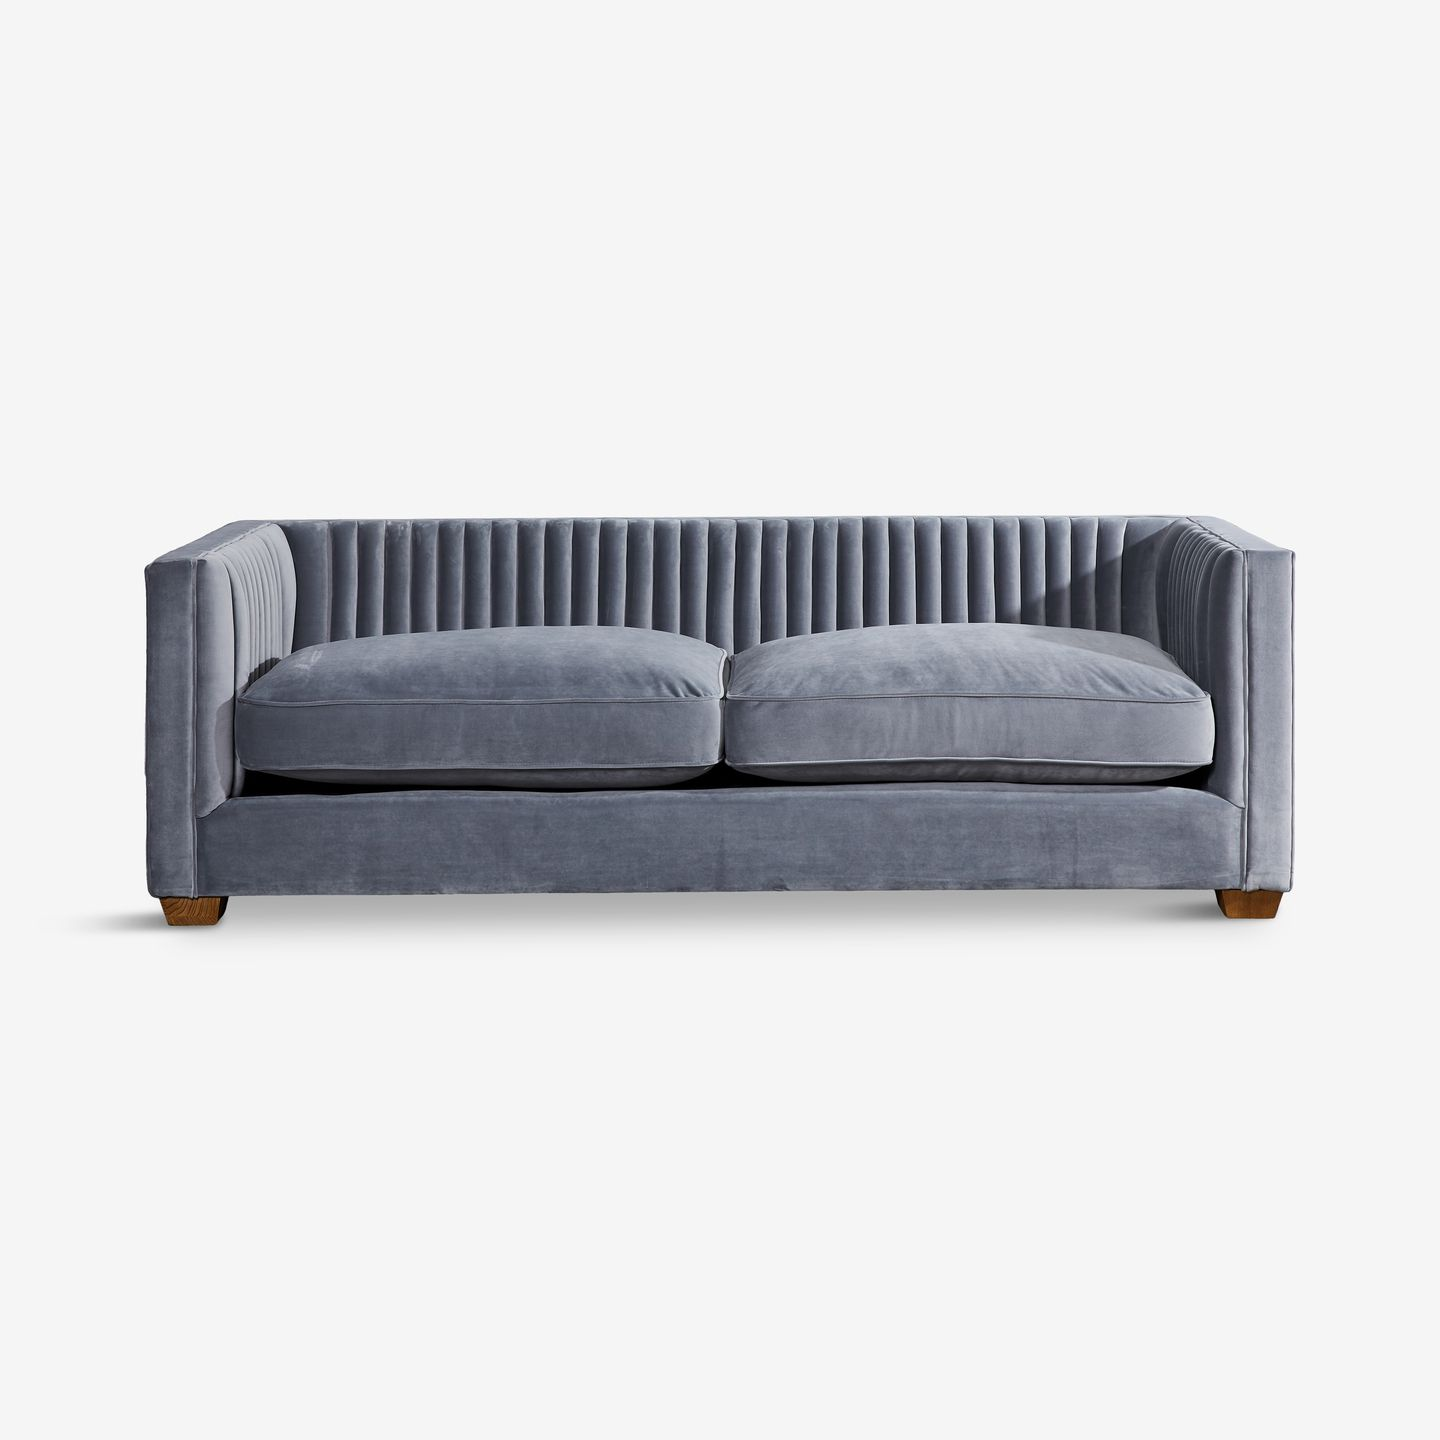 Sofas A Sofa For When You Want To Treat Yo Self Sofa Grey Upholstery Rental Furniture